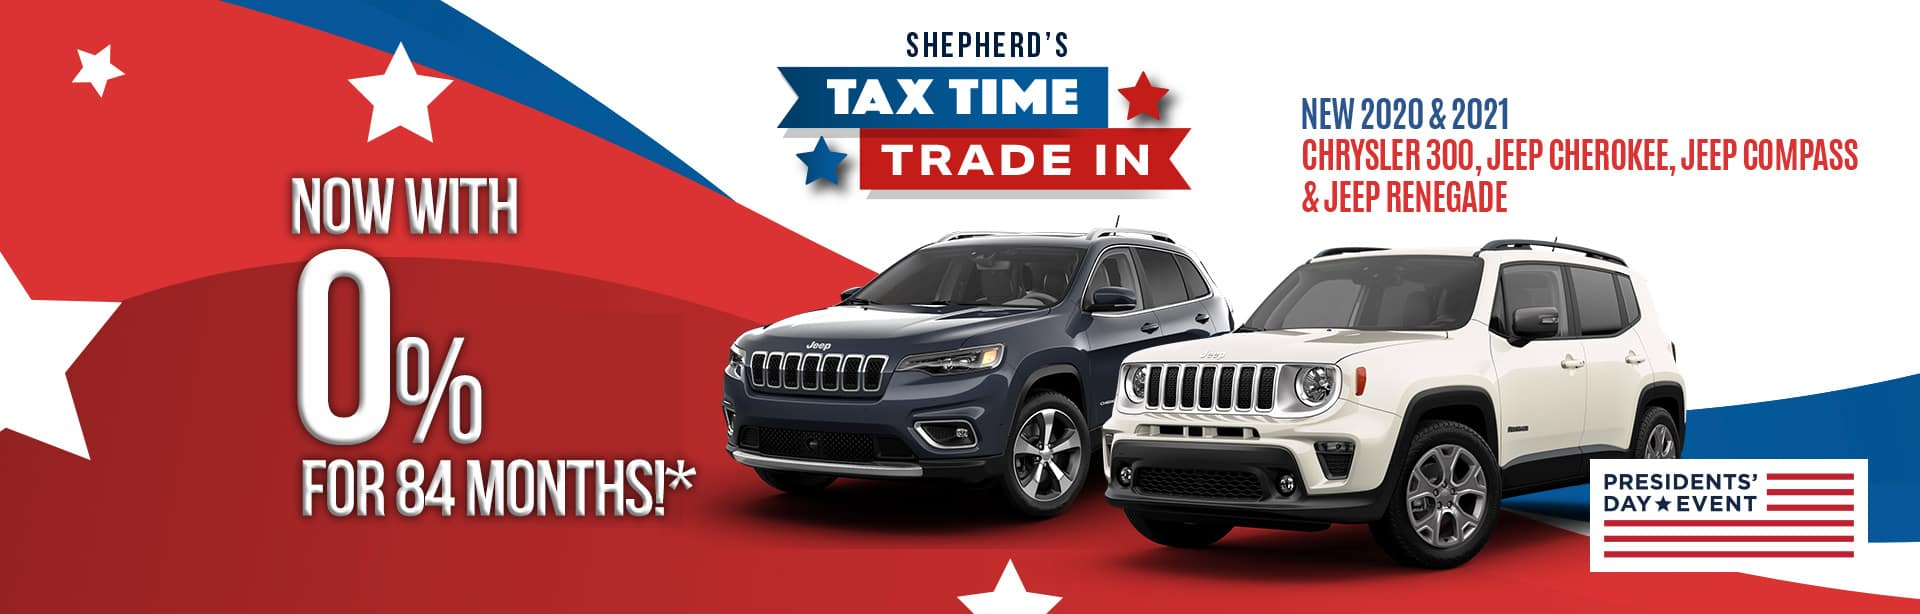 Huge finance offer near Fort Wayne Indiana for the Chrysler 300, Jeep Cherokee, Jeep Compass, or Jeep Renegade